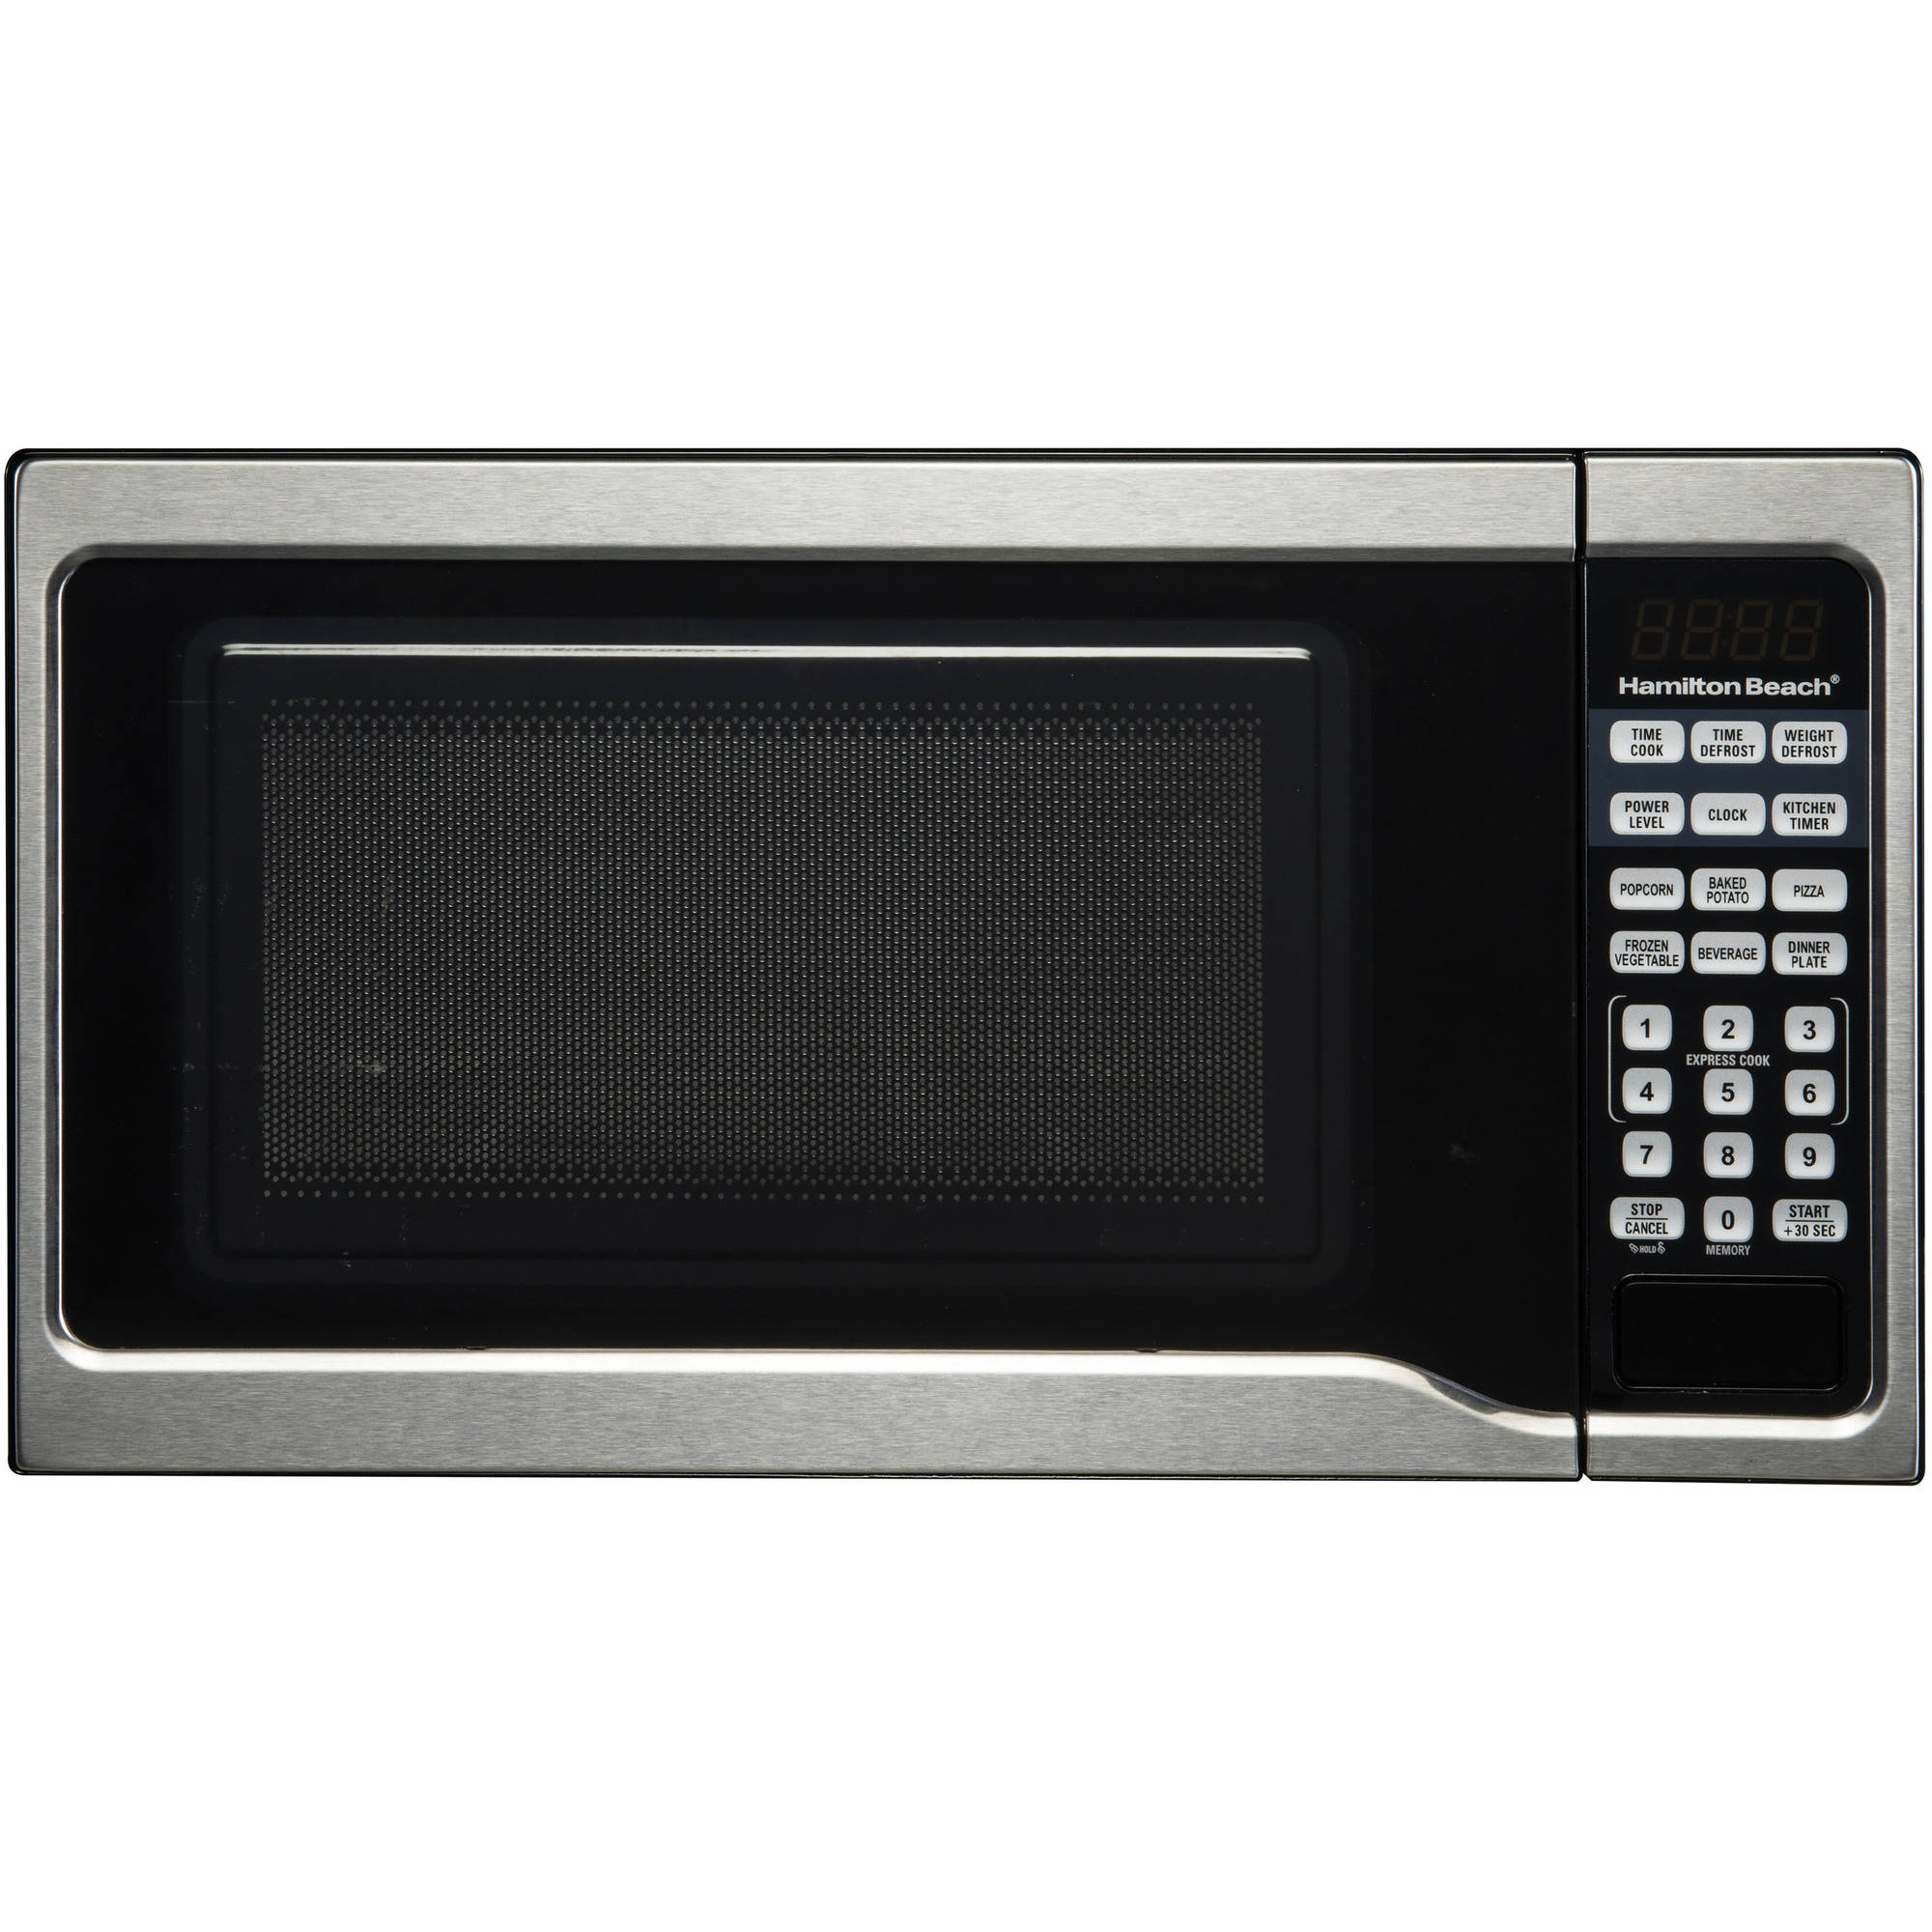 Hamilton Beach 0.7 Cu. Ft. 700W Stainless Steel Microwave